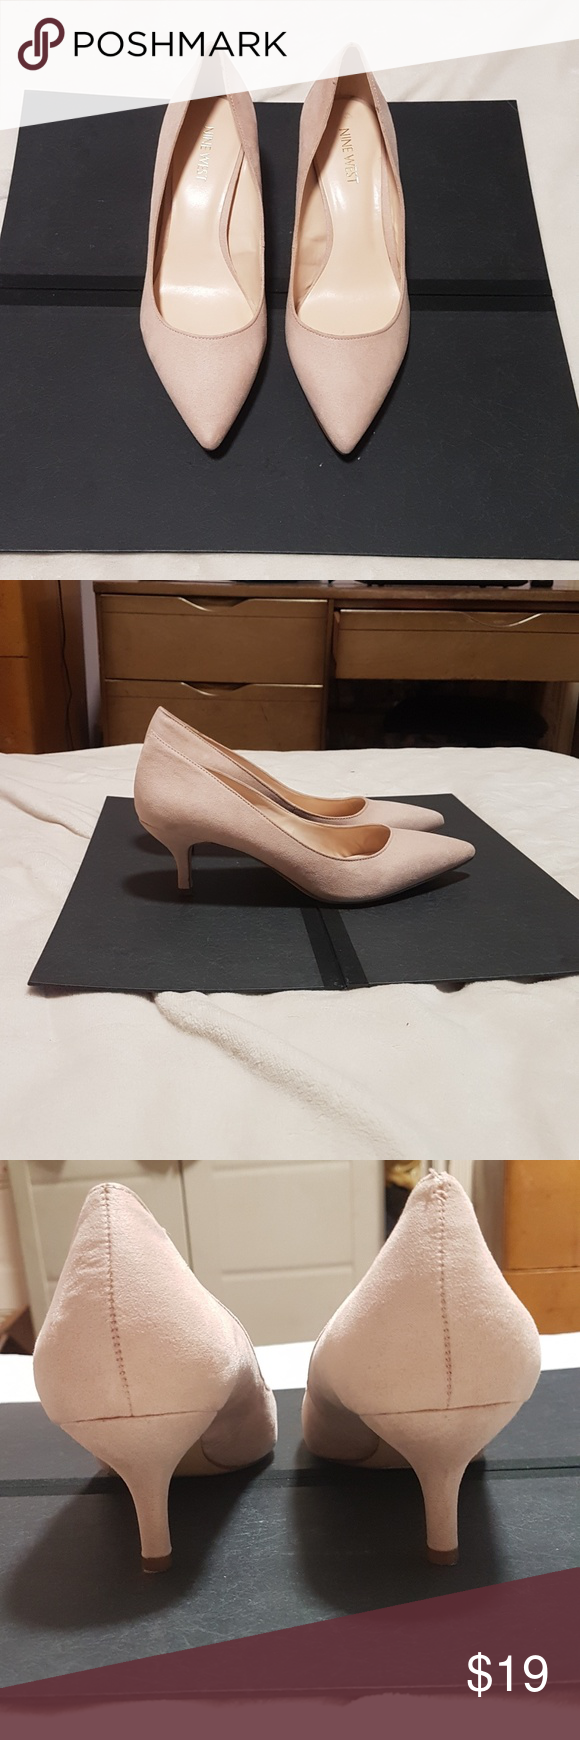 Nine West Pink Suede Nydia Kitten Heels Pointed Toe Heels Pink Suede Shoes Women Heels